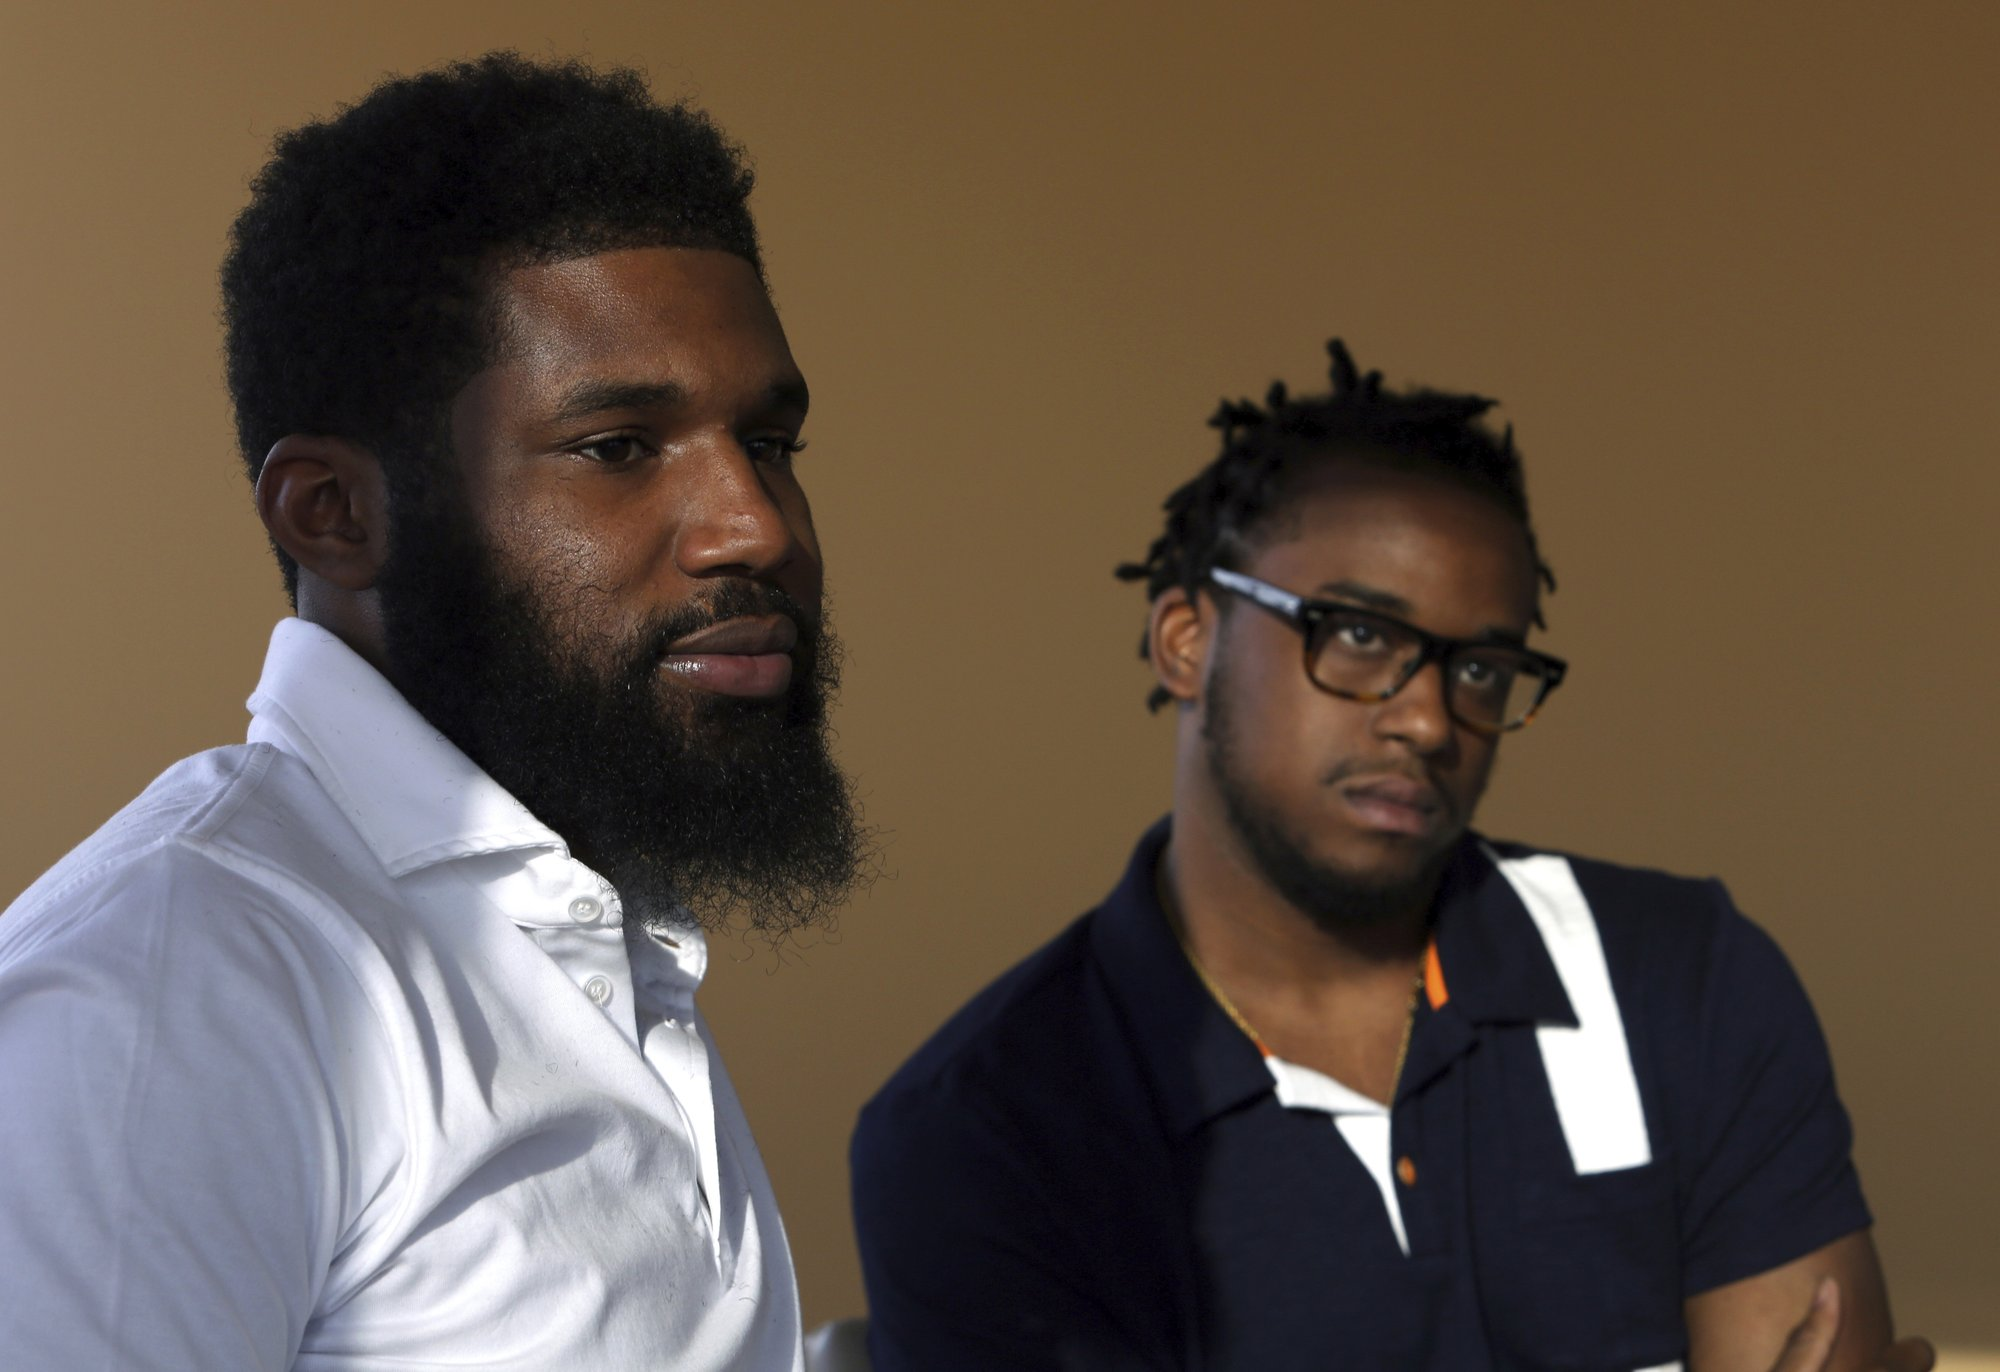 Black men arrested at Starbucks settle with the company